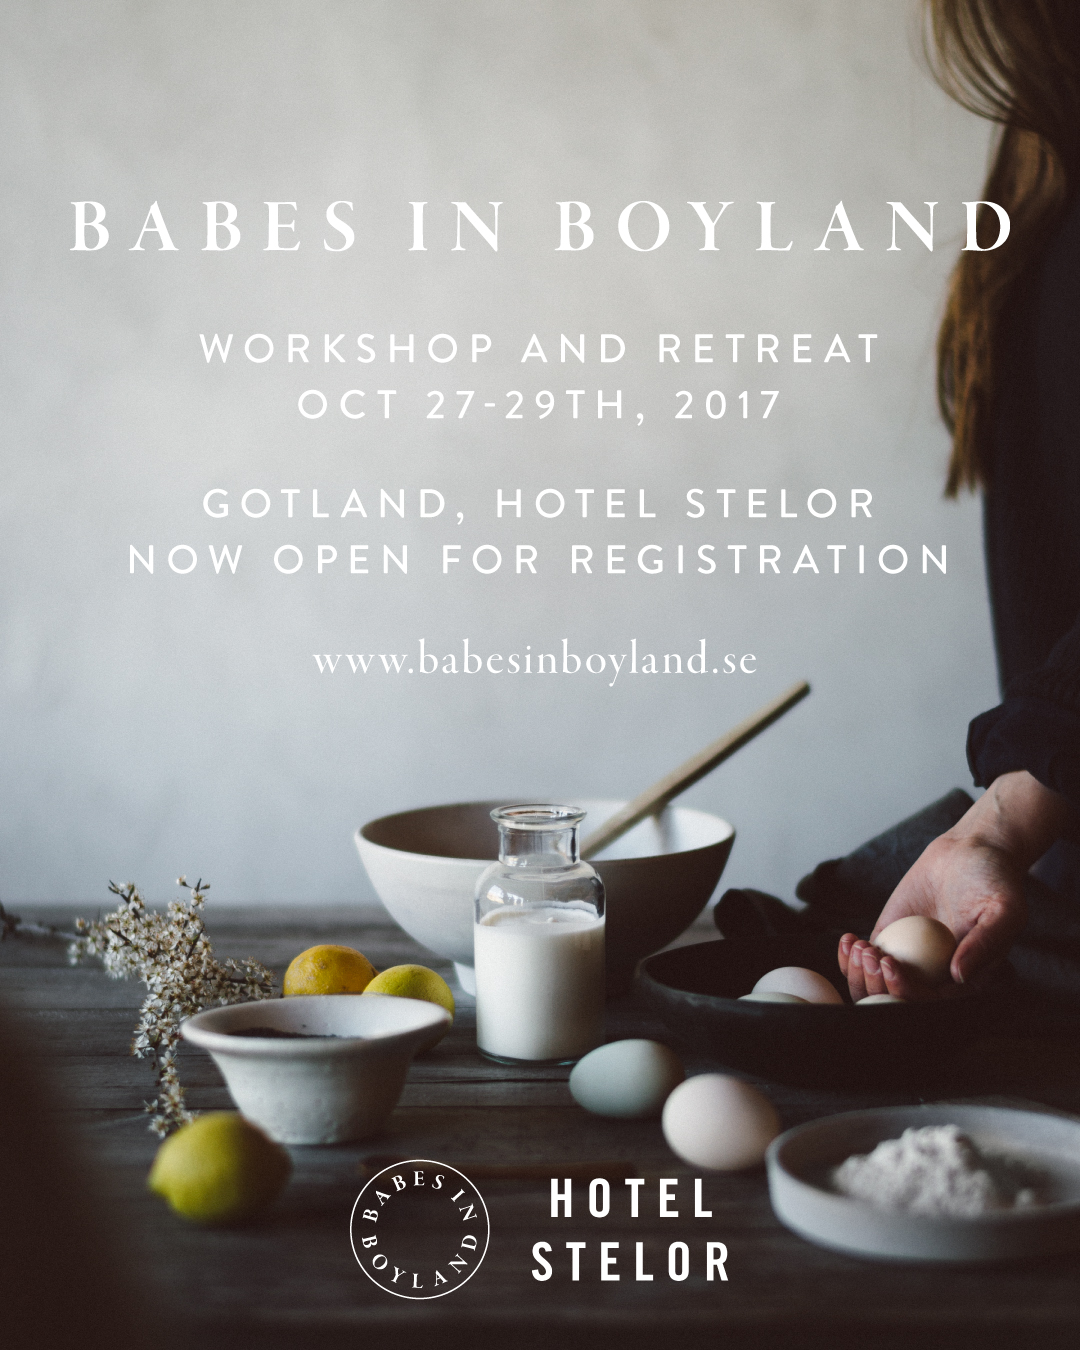 Workshop and retreat, October 27-29 TH by Babes in Boyland